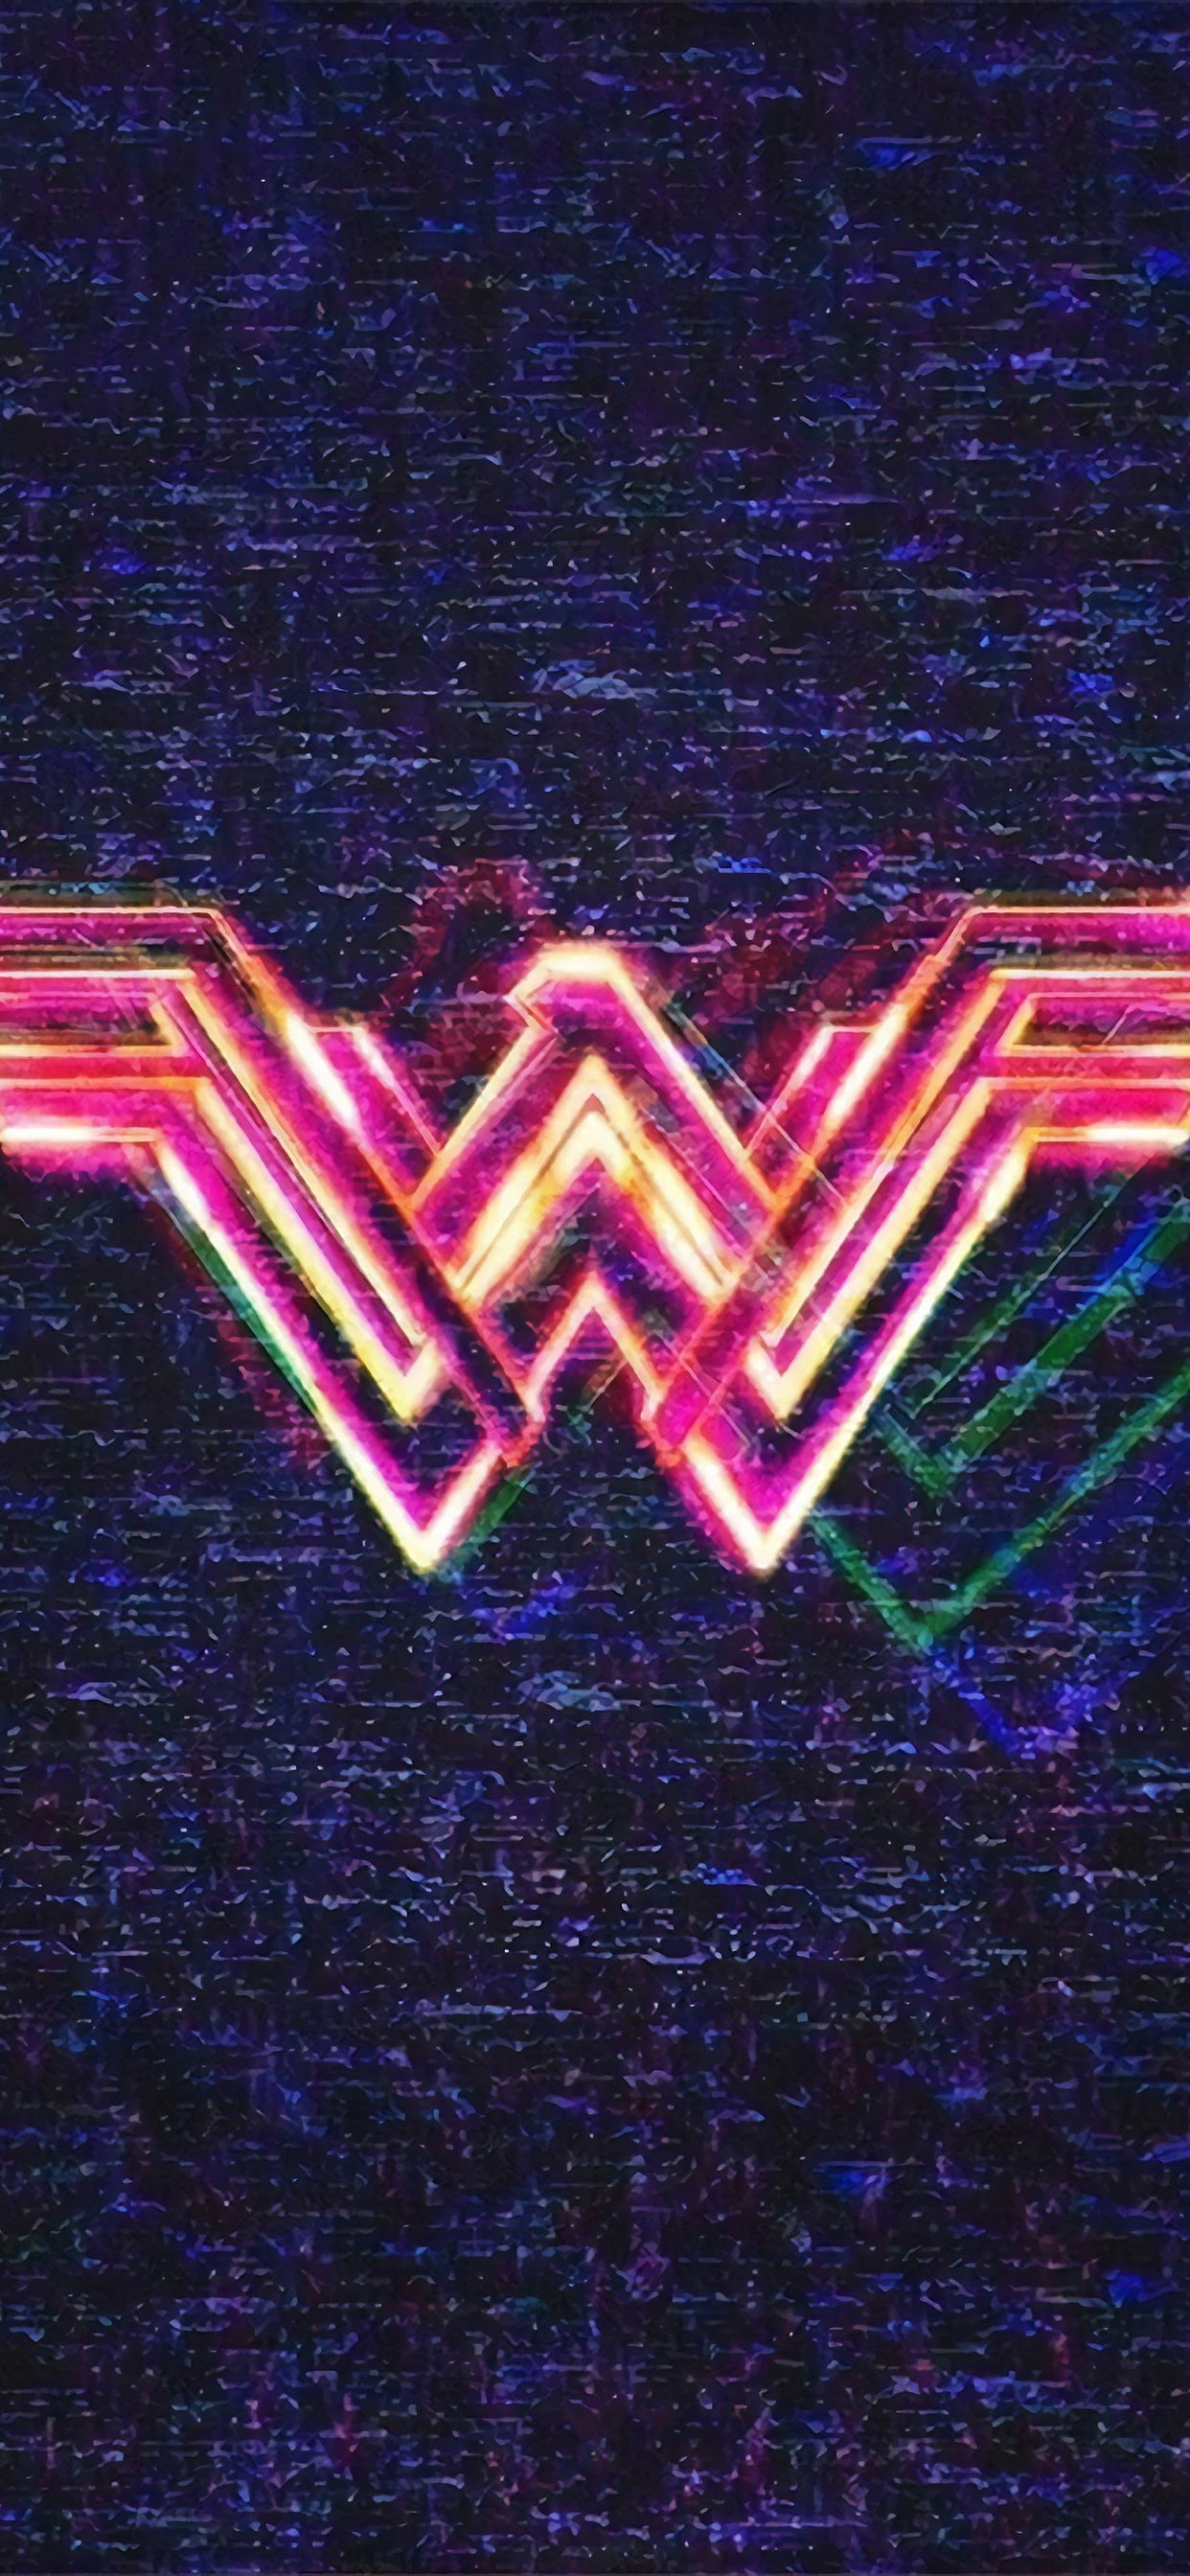 Wonder Woman 1984 Logo 4k Wonder Woman Iphone 11 3176005 Hd Wallpaper Backgrounds Download